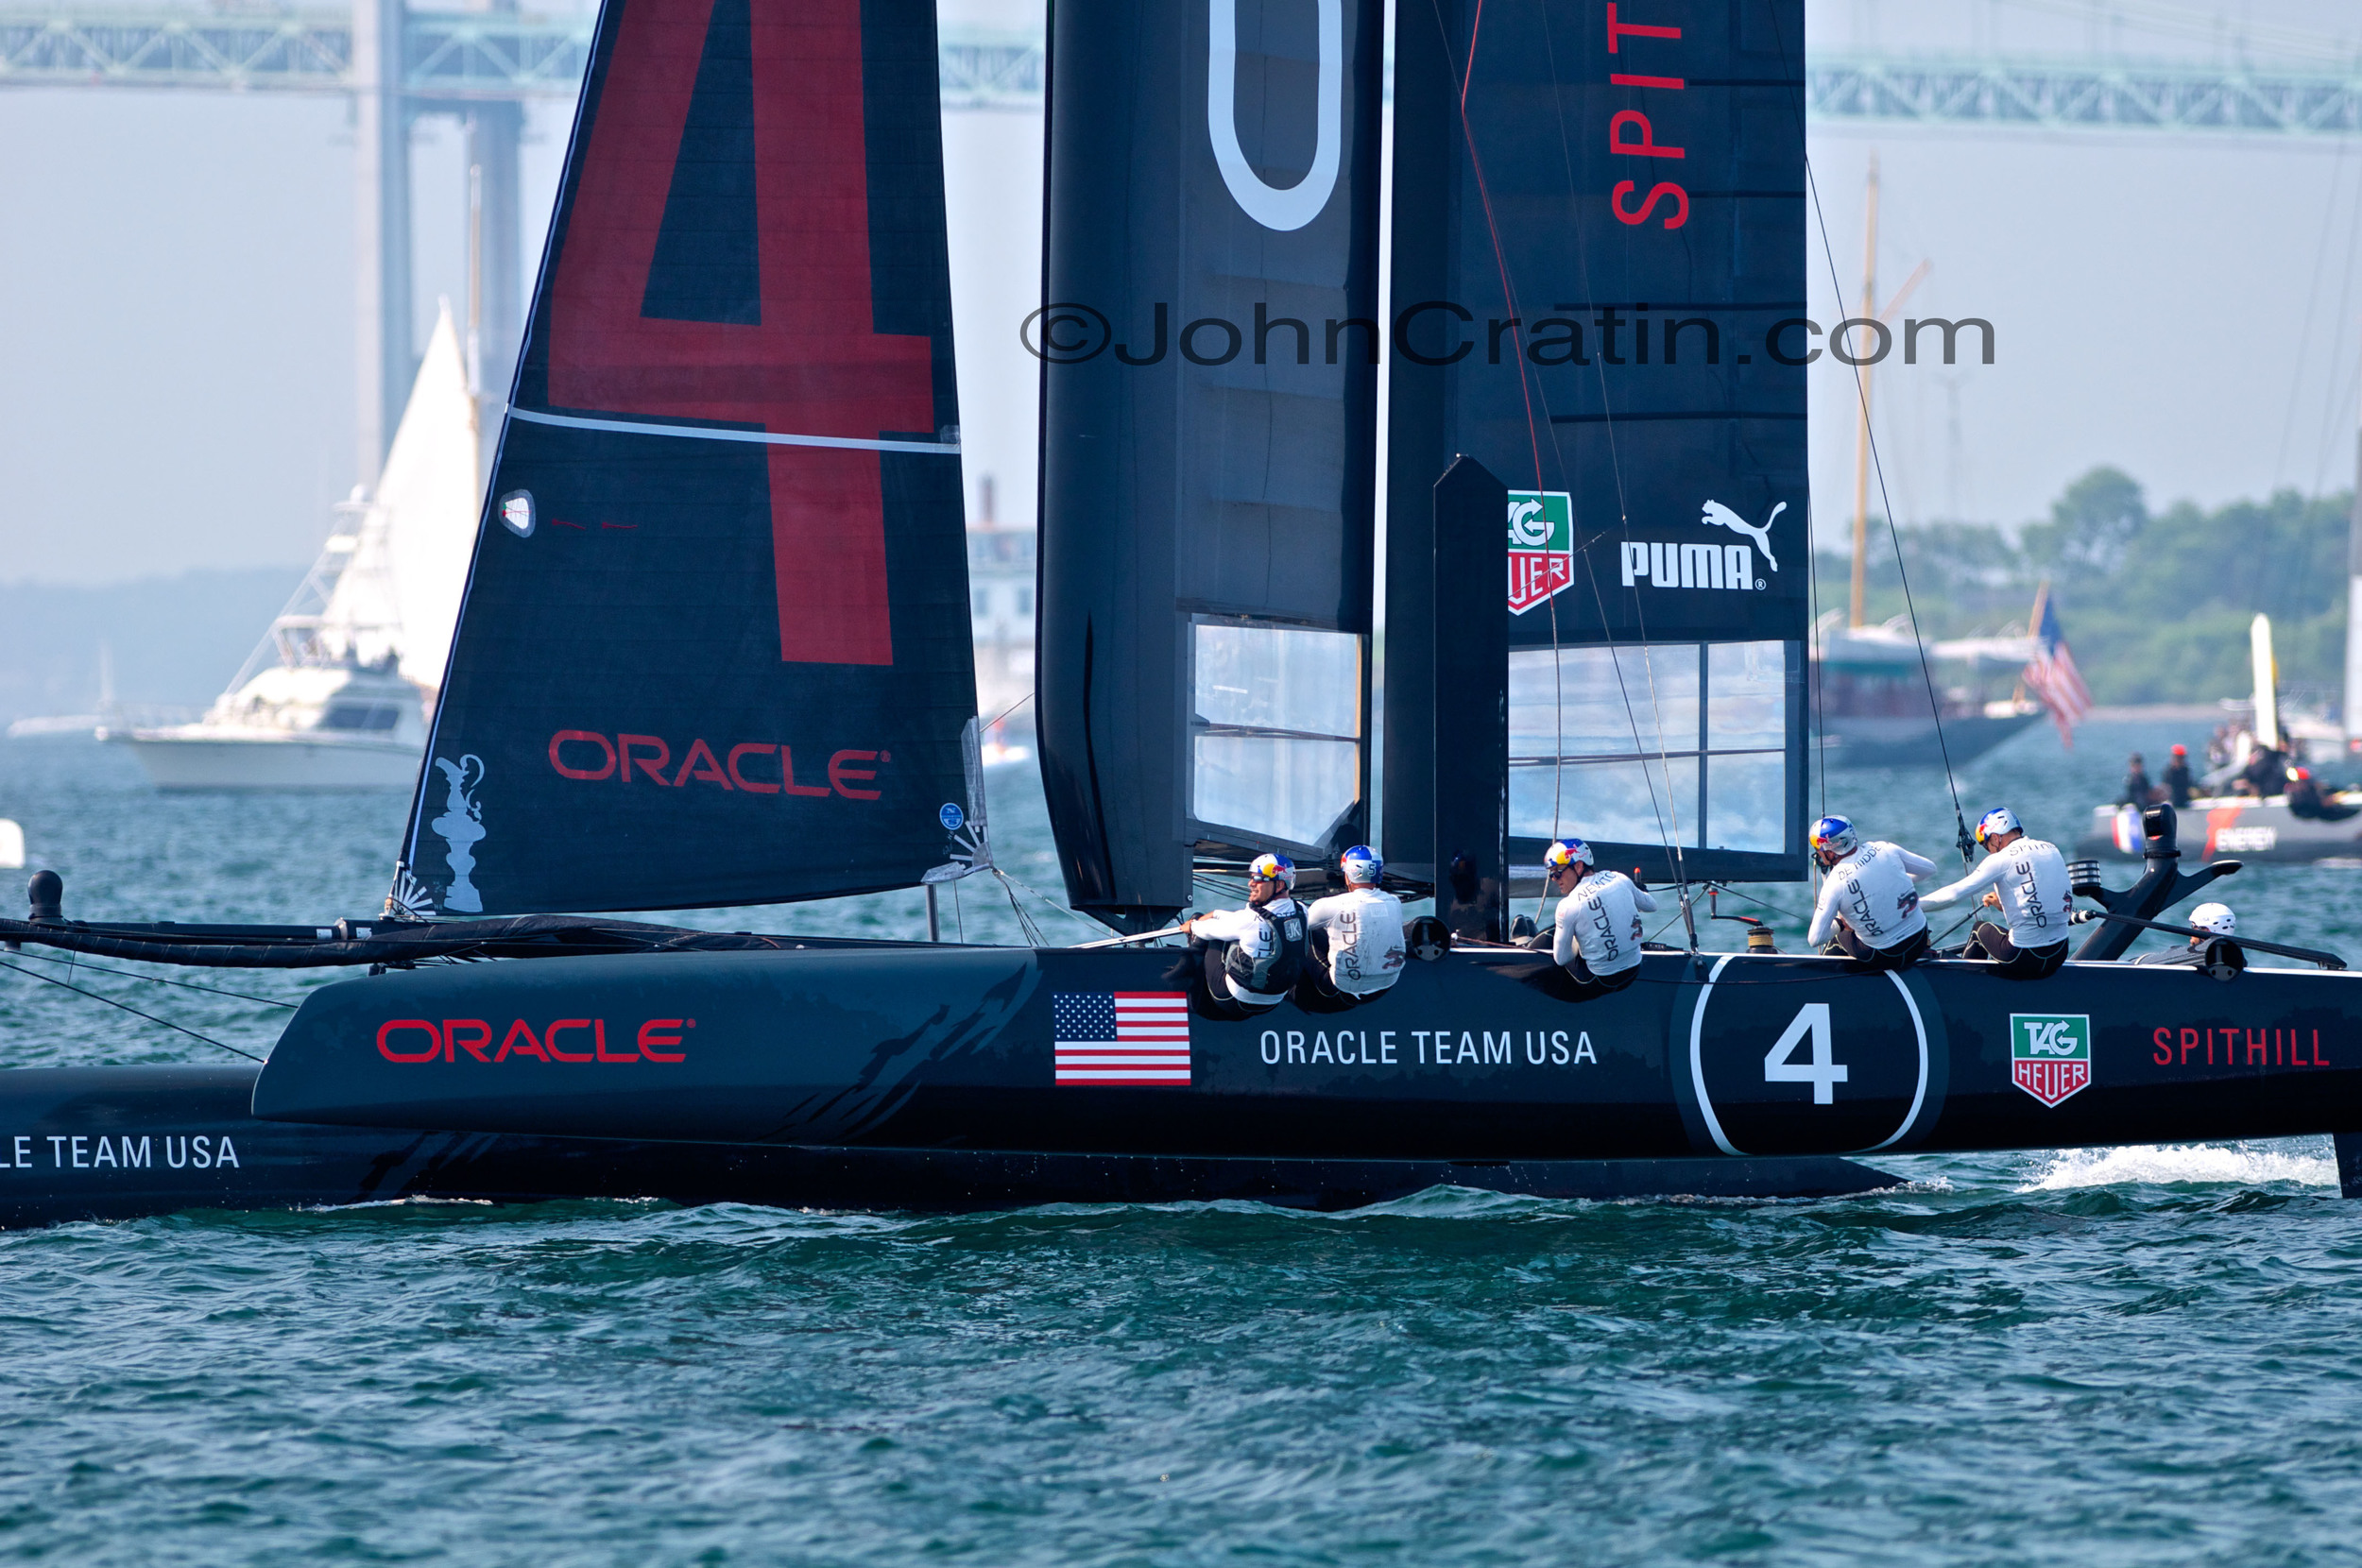 Oracle Spithill copy CR.jpg